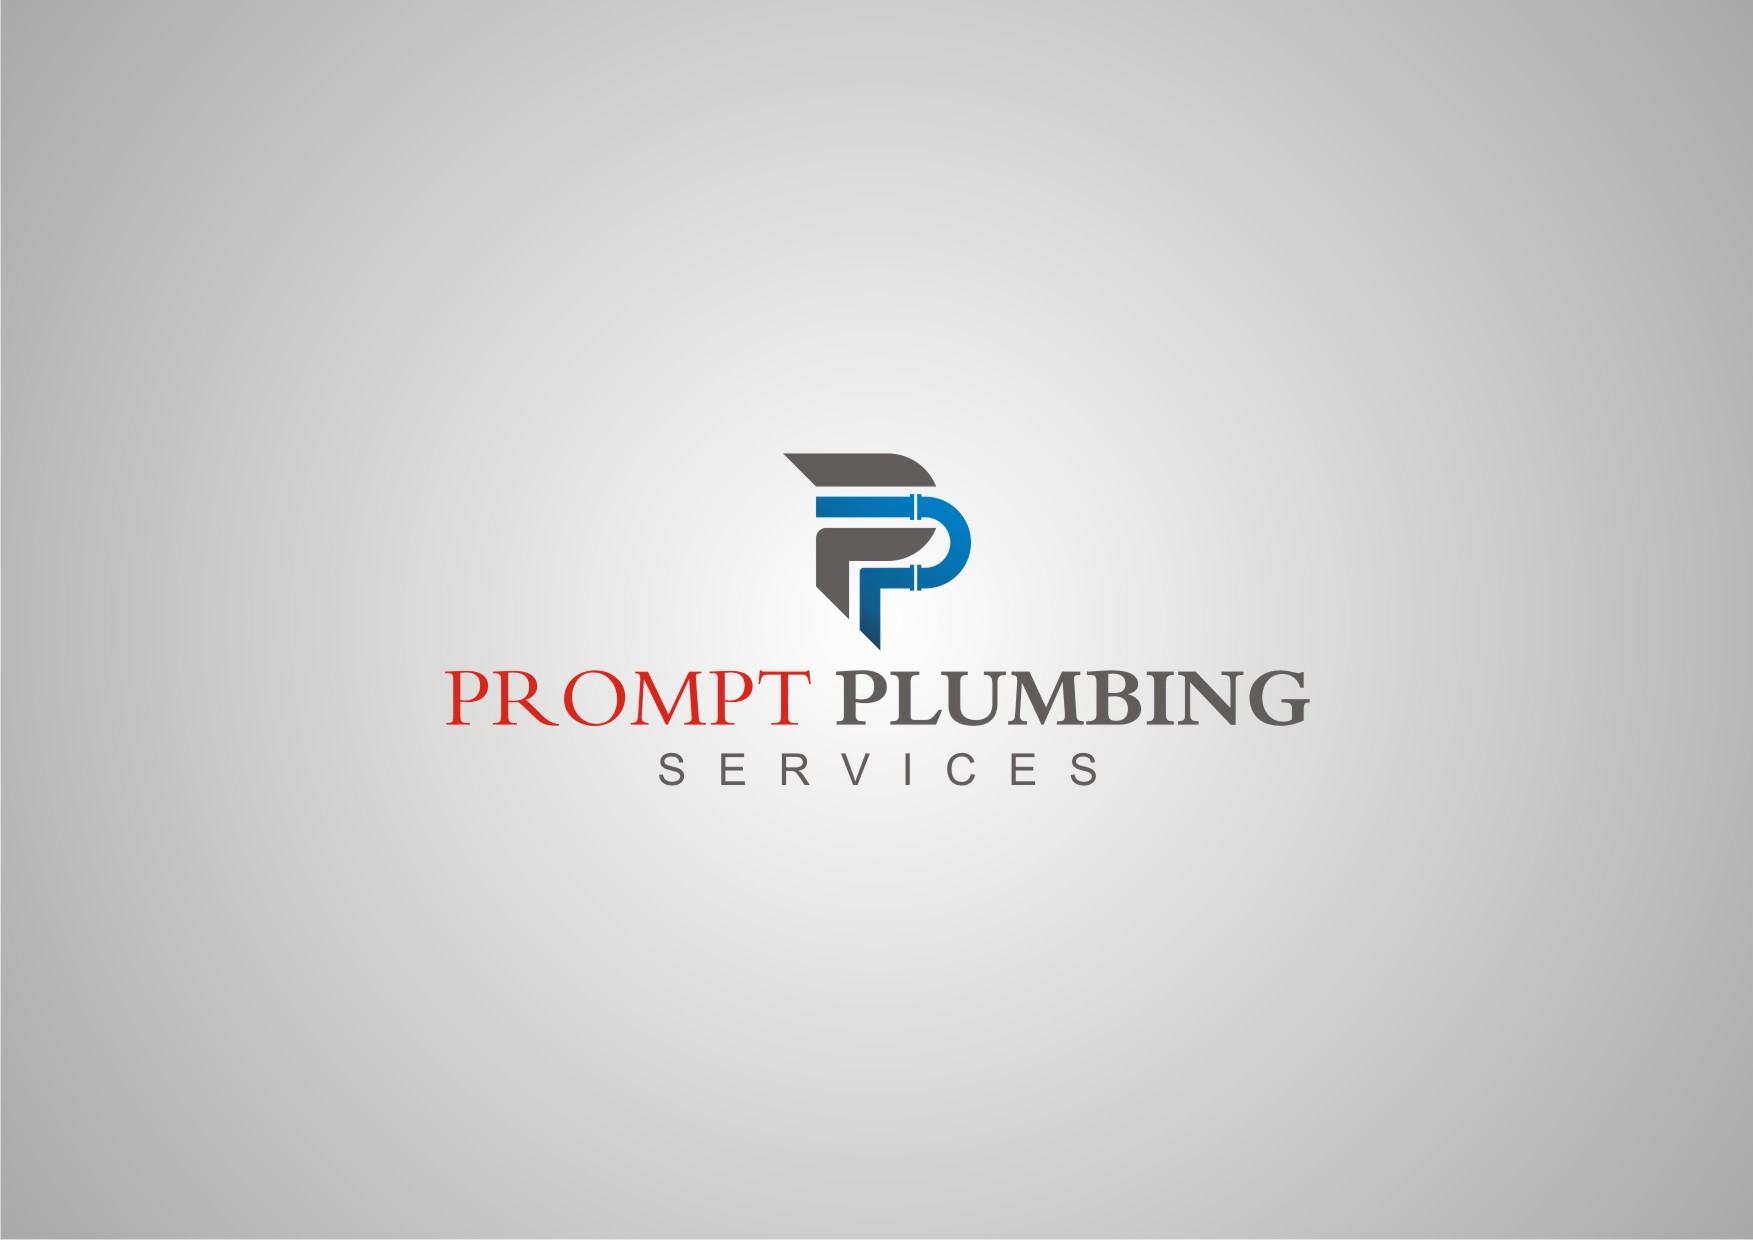 Logo Design by Private User - Entry No. 61 in the Logo Design Contest Artistic Logo Design for Prompt Plumbing Services.